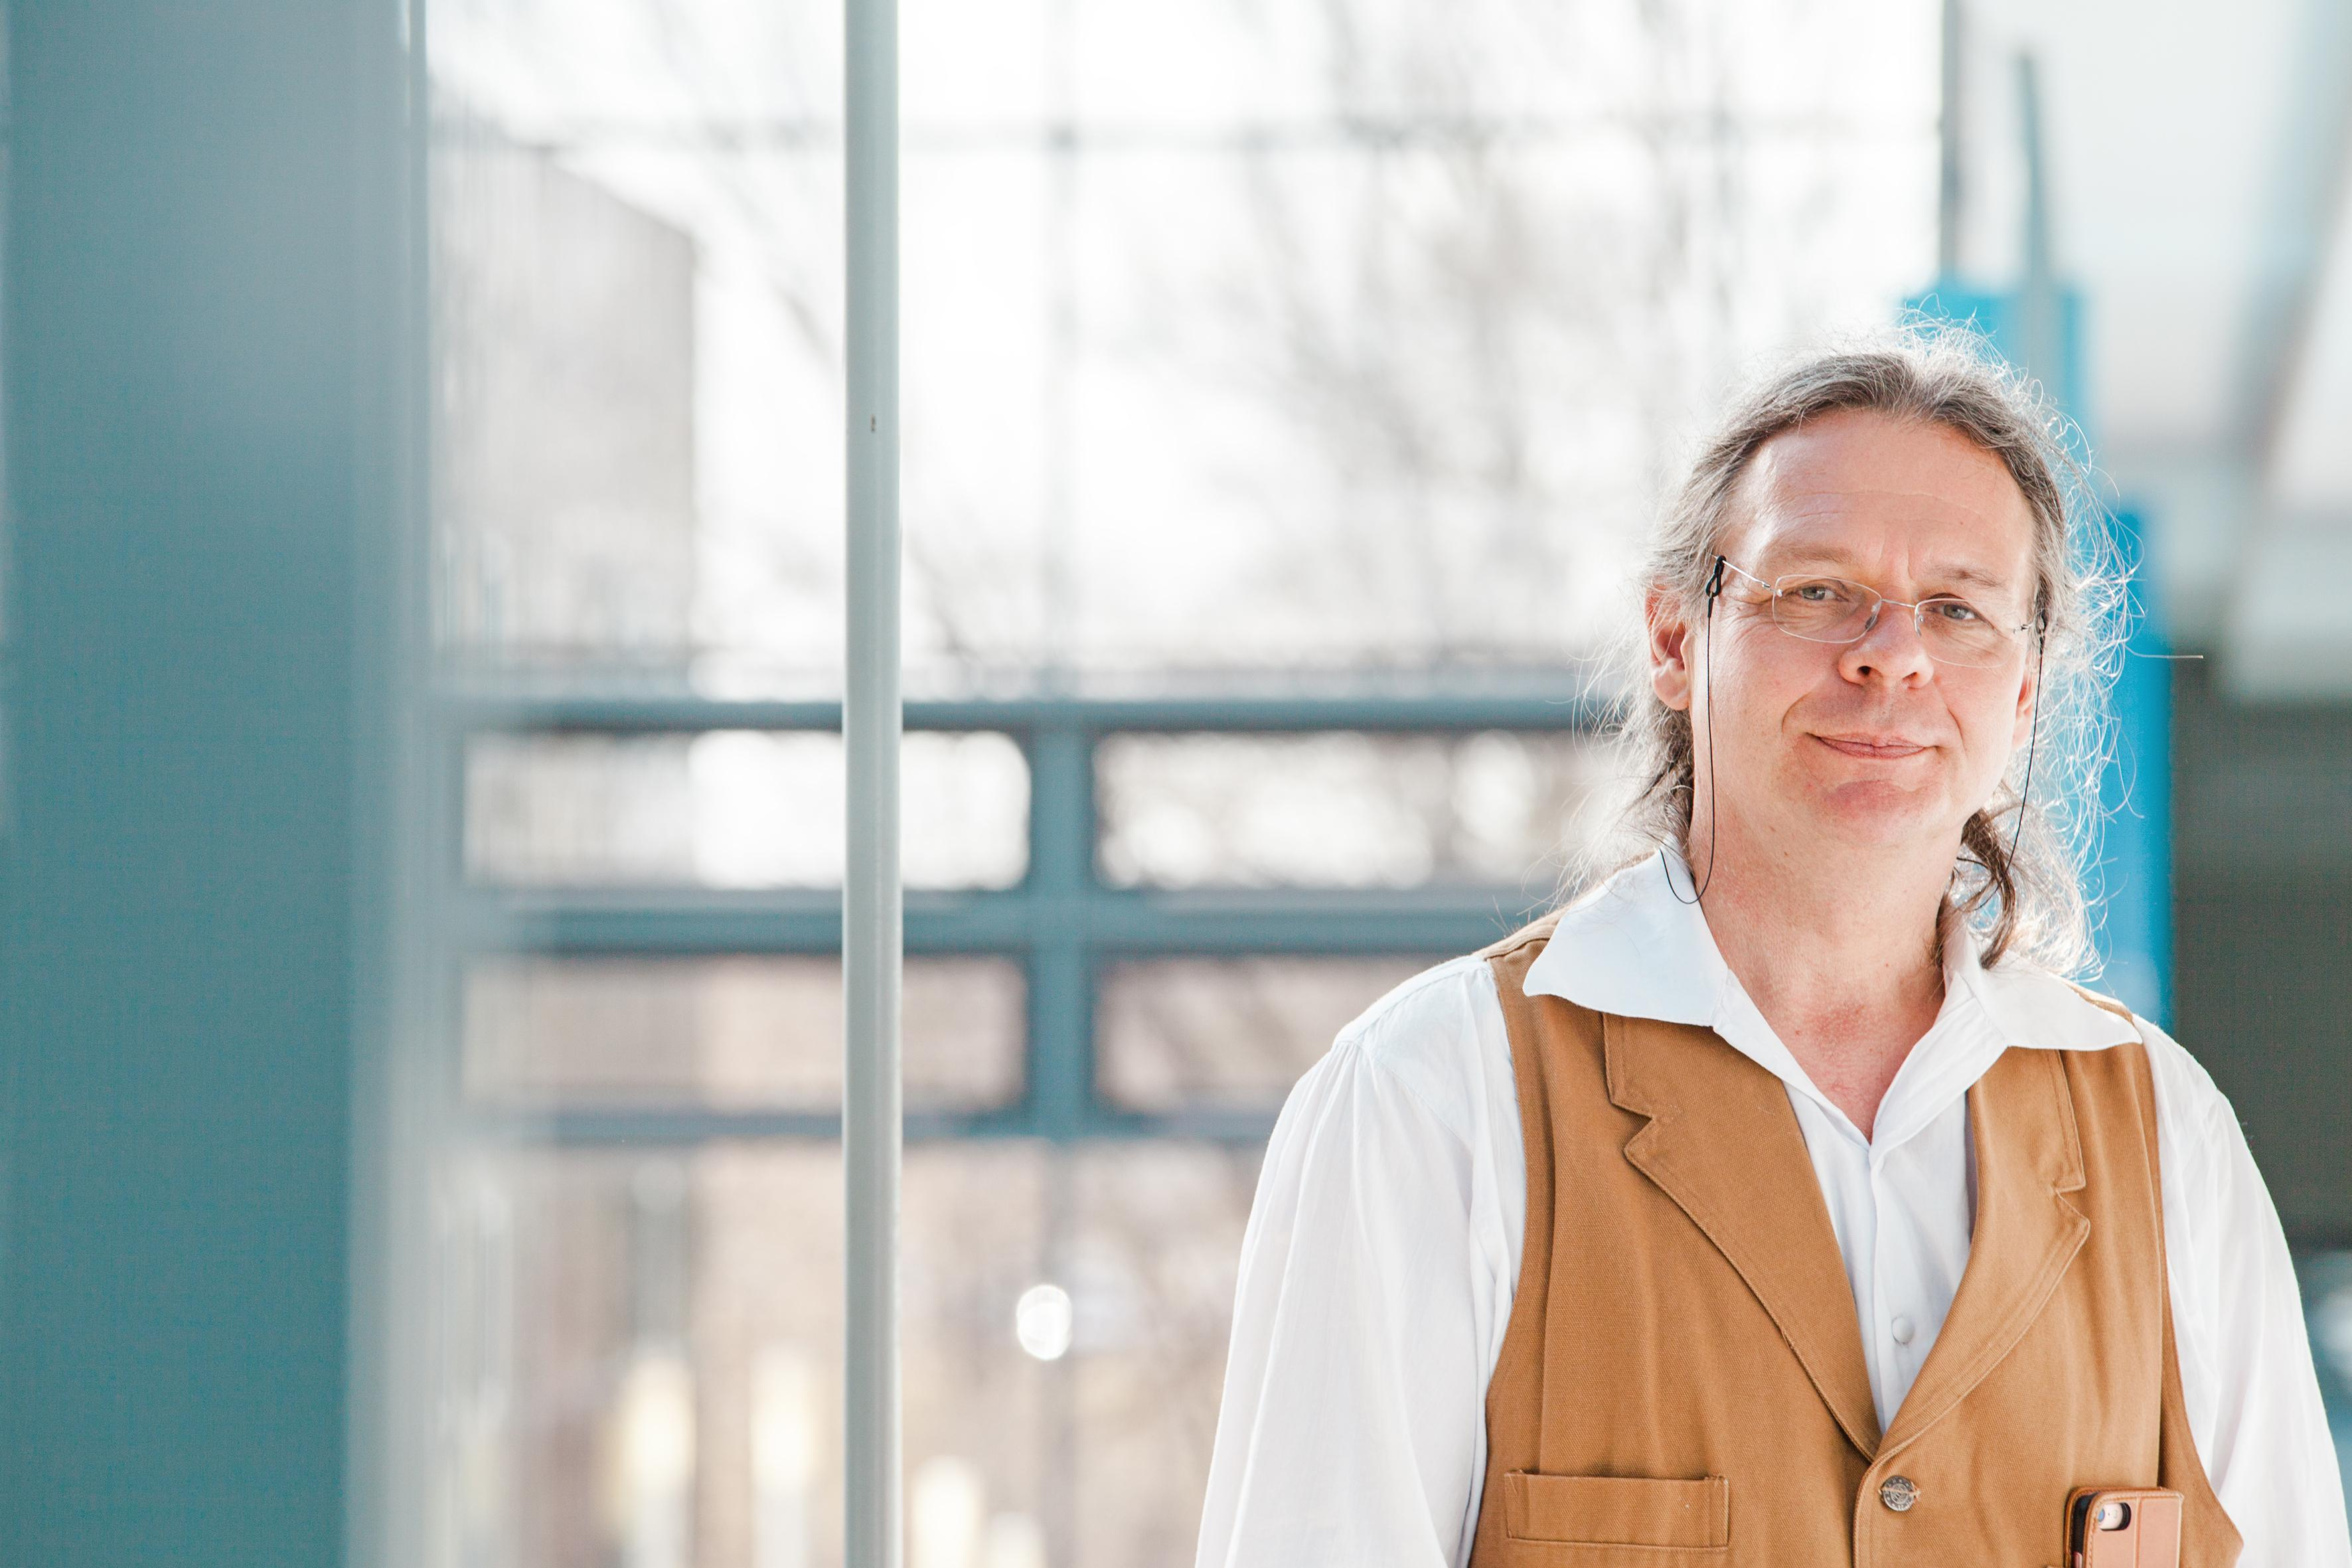 Co-author Prof. Burkhard Rost in the building of the Department of Informatics at the Technical University of Munich